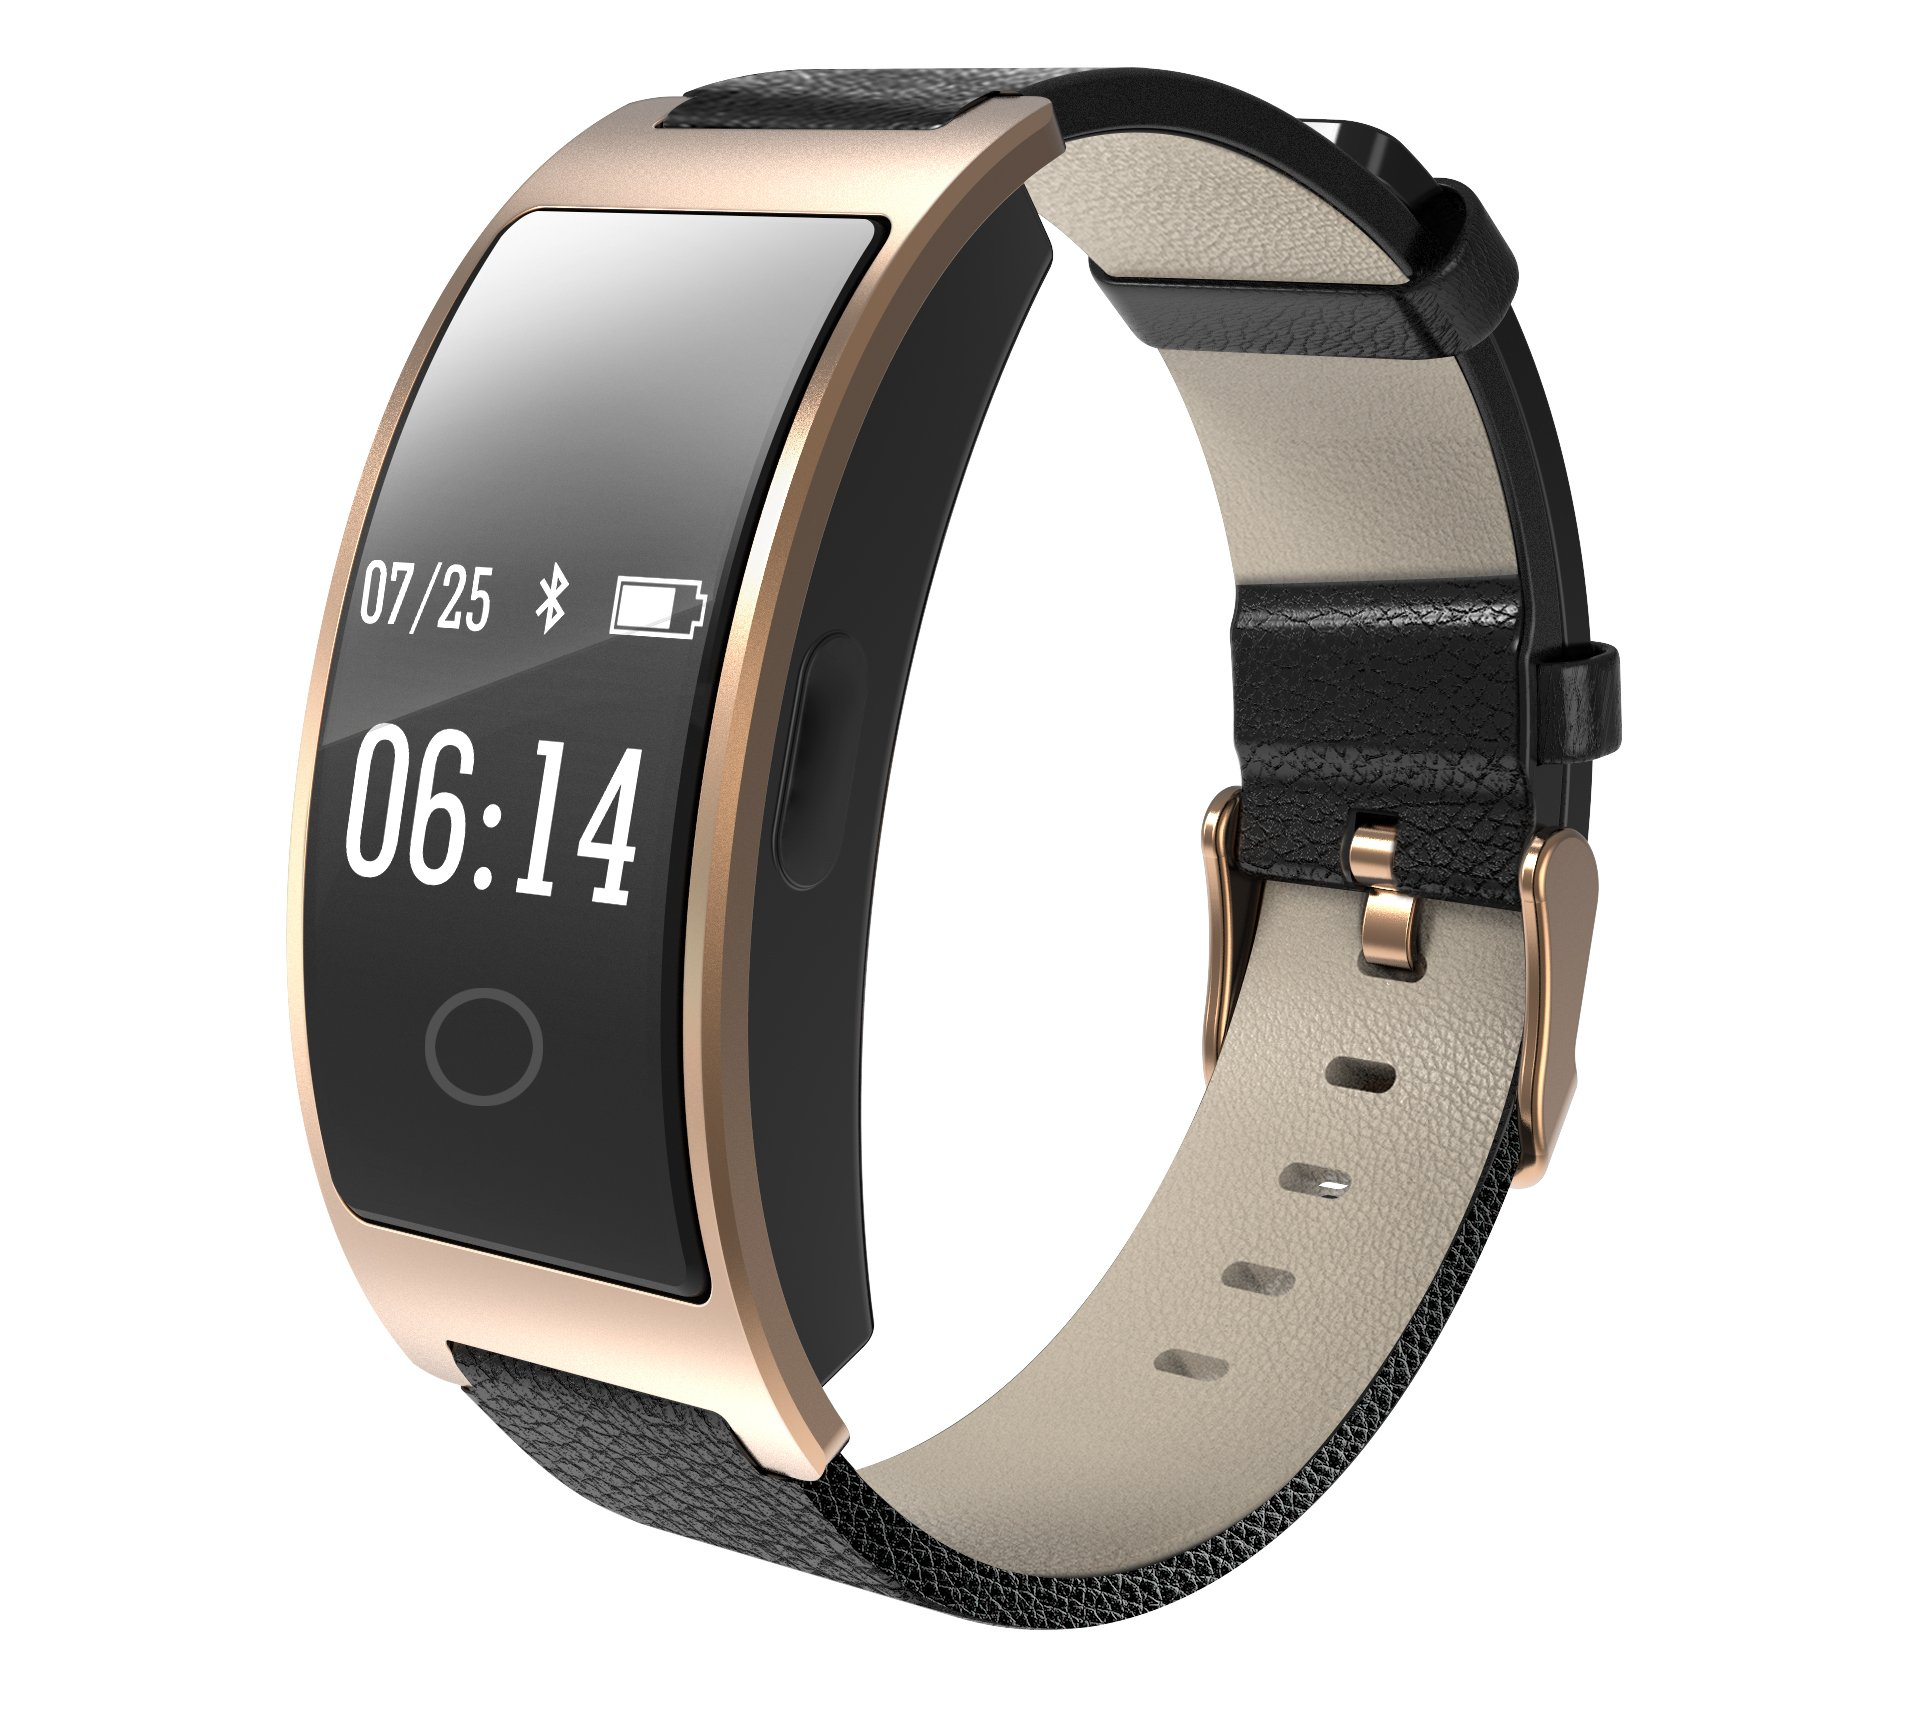 Hangang Smart Bracelet CK11s Smart Bluetooth Watch Band Sport Watch IP67 Waterproof Blood Pressure Heart Rate Monitor Step Reminder for iOS Android (02012-gold)